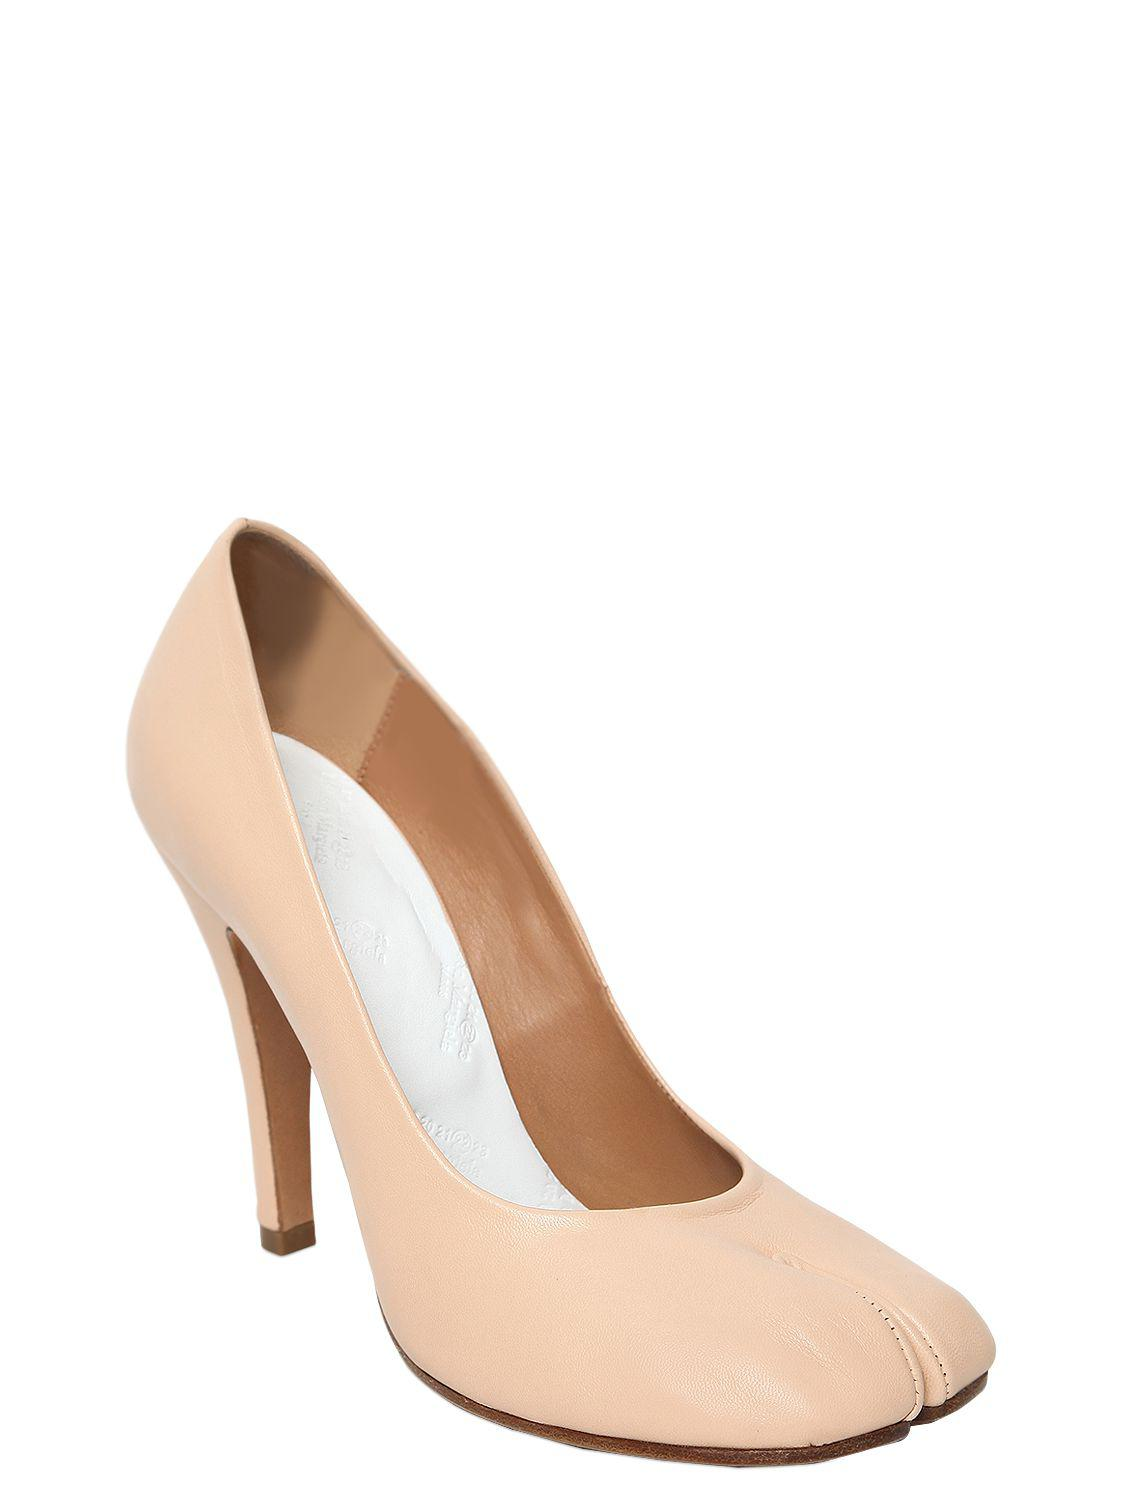 830f47dcf3d7 Lyst - Maison Margiela 100mm Tabi Stiletto Leather Pumps in Natural - Save  30%